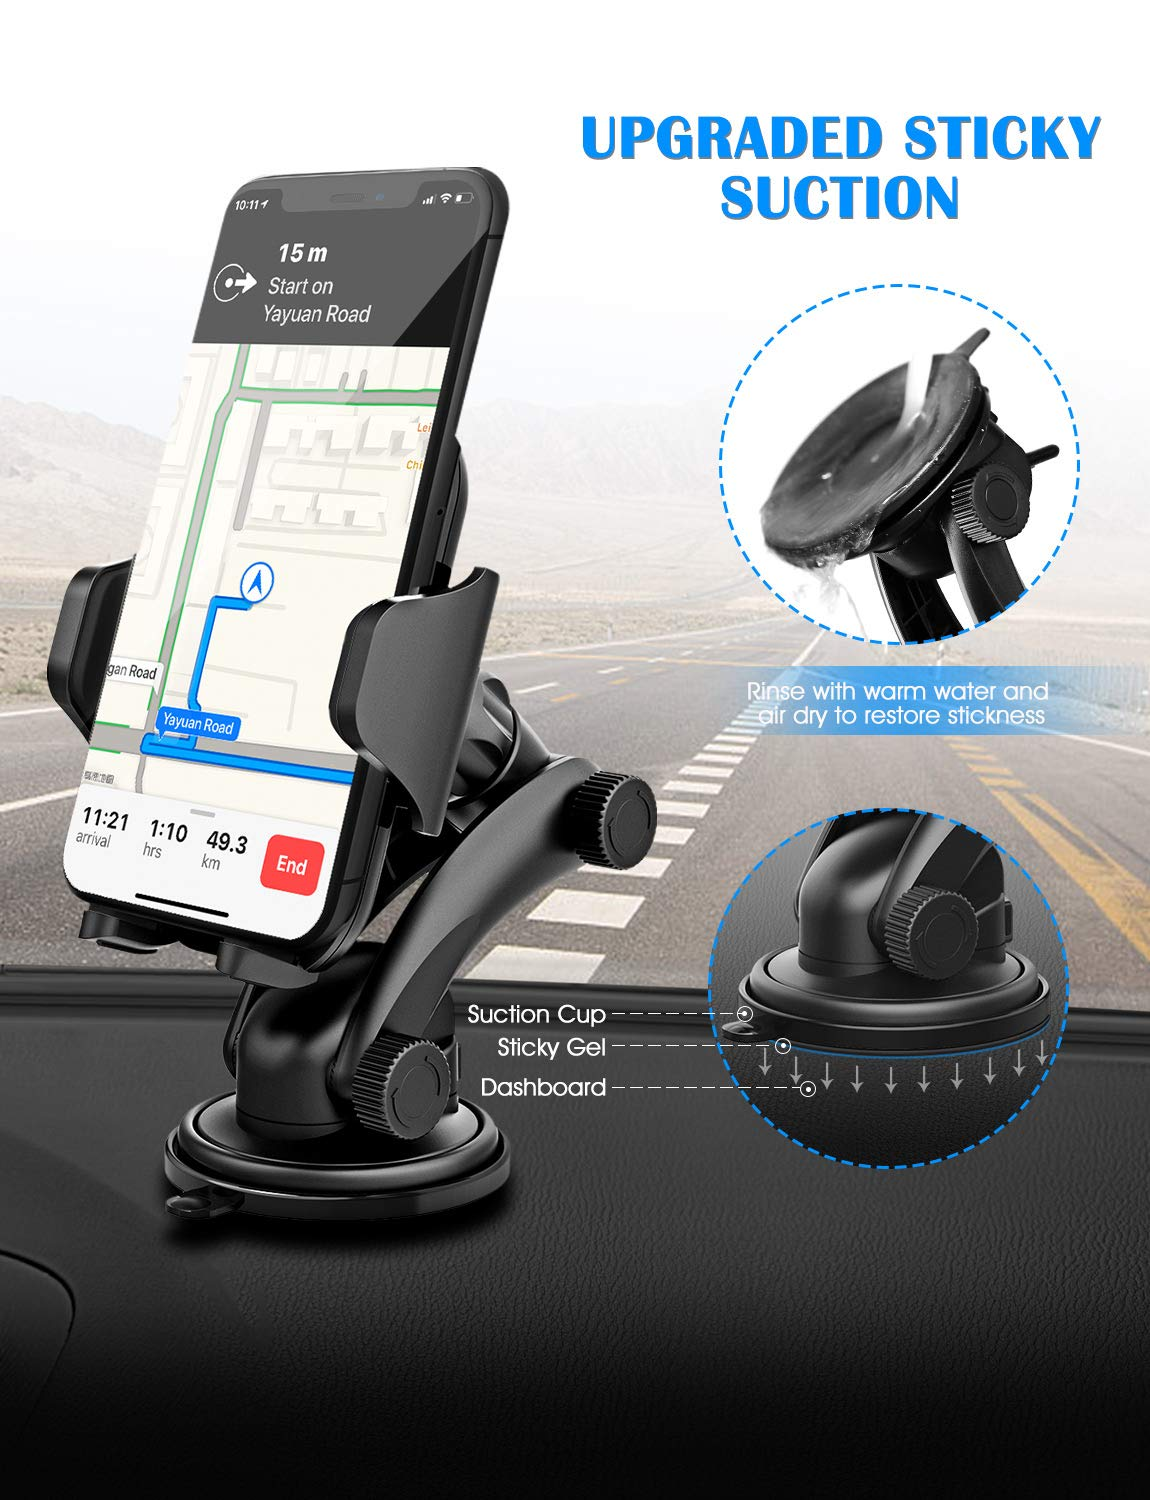 Galaxy S8//S7//S6 Mpow M12 Dashboard Car Phone Mount One-Touch Design/&Washable Strong Sticky Gel Pad for iPhone X//8//8Plus7//7P//6s//6P Huawei and Other Phone MCM12-USAA6 Google Universal Car Phone Mount Holder